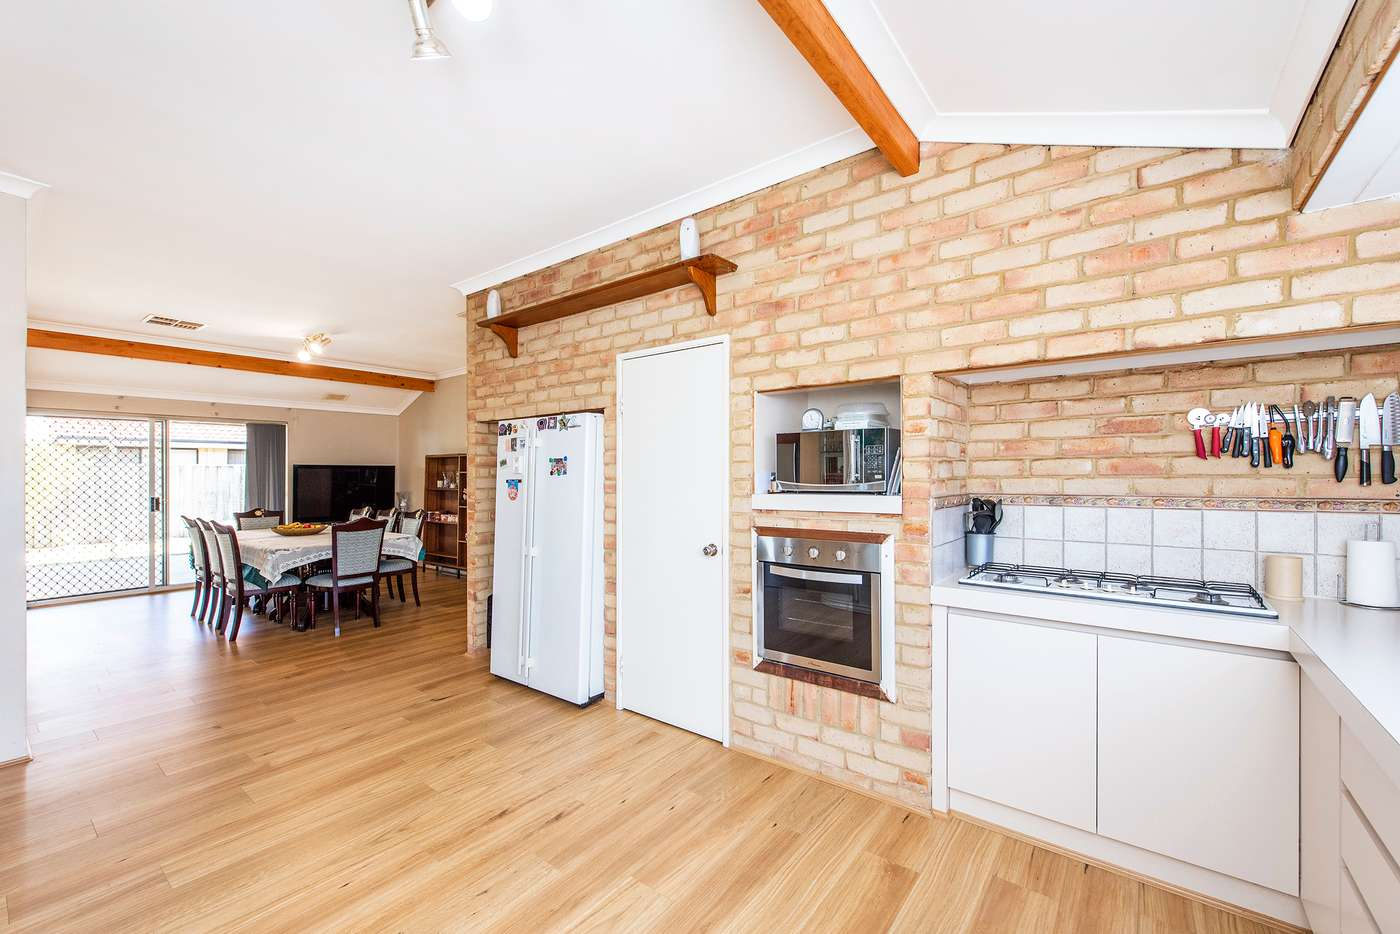 Main view of Homely house listing, 5 Silky Vale, Halls Head WA 6210